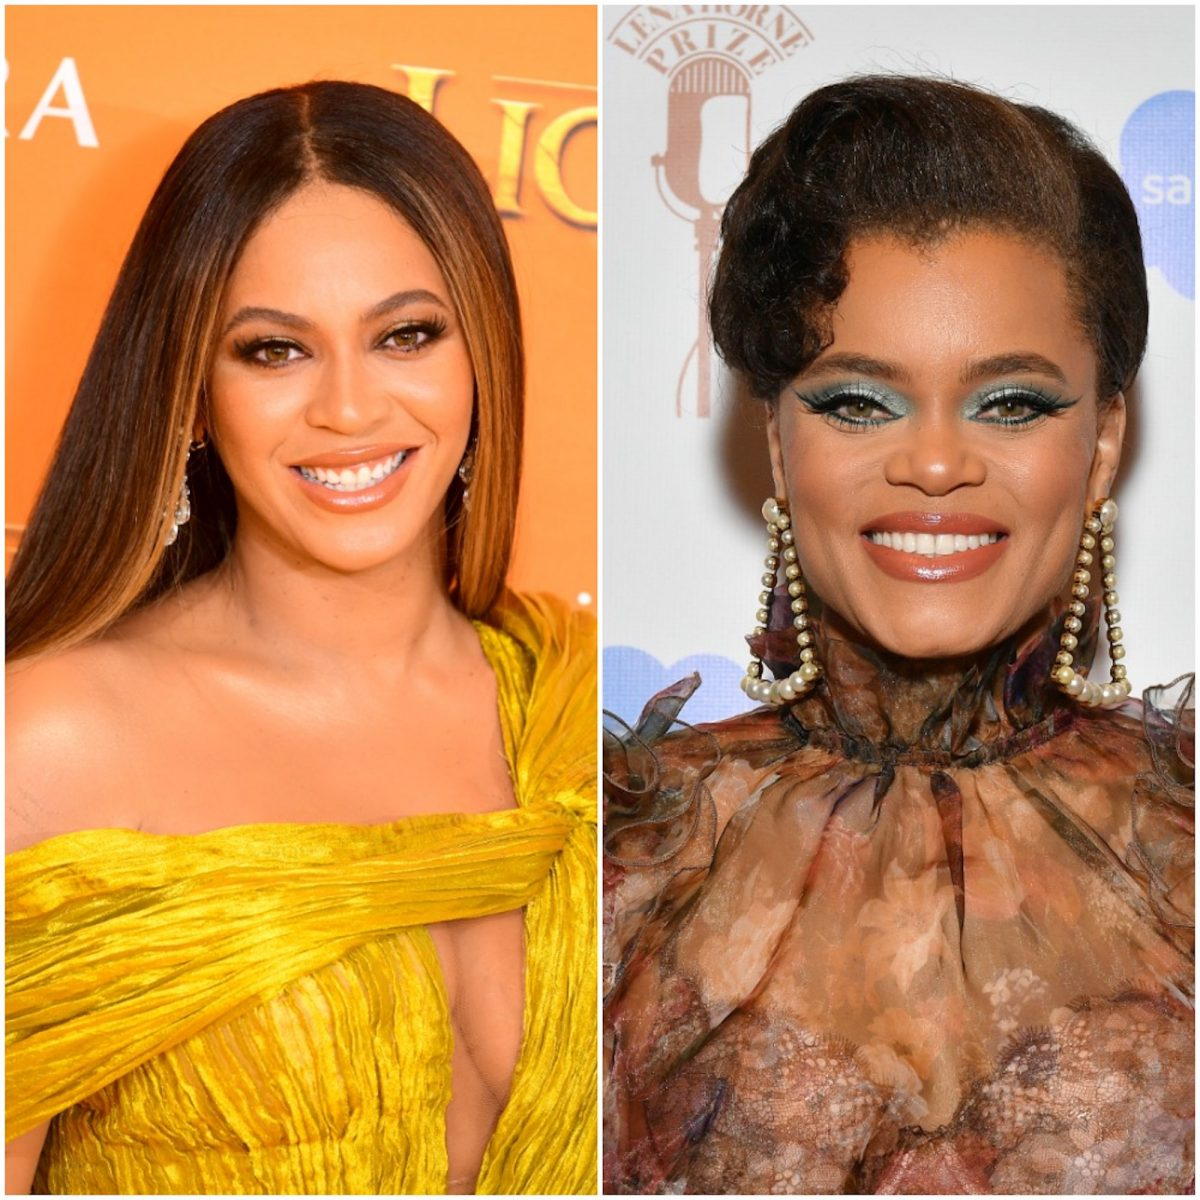 Beyoncé and Andra Day